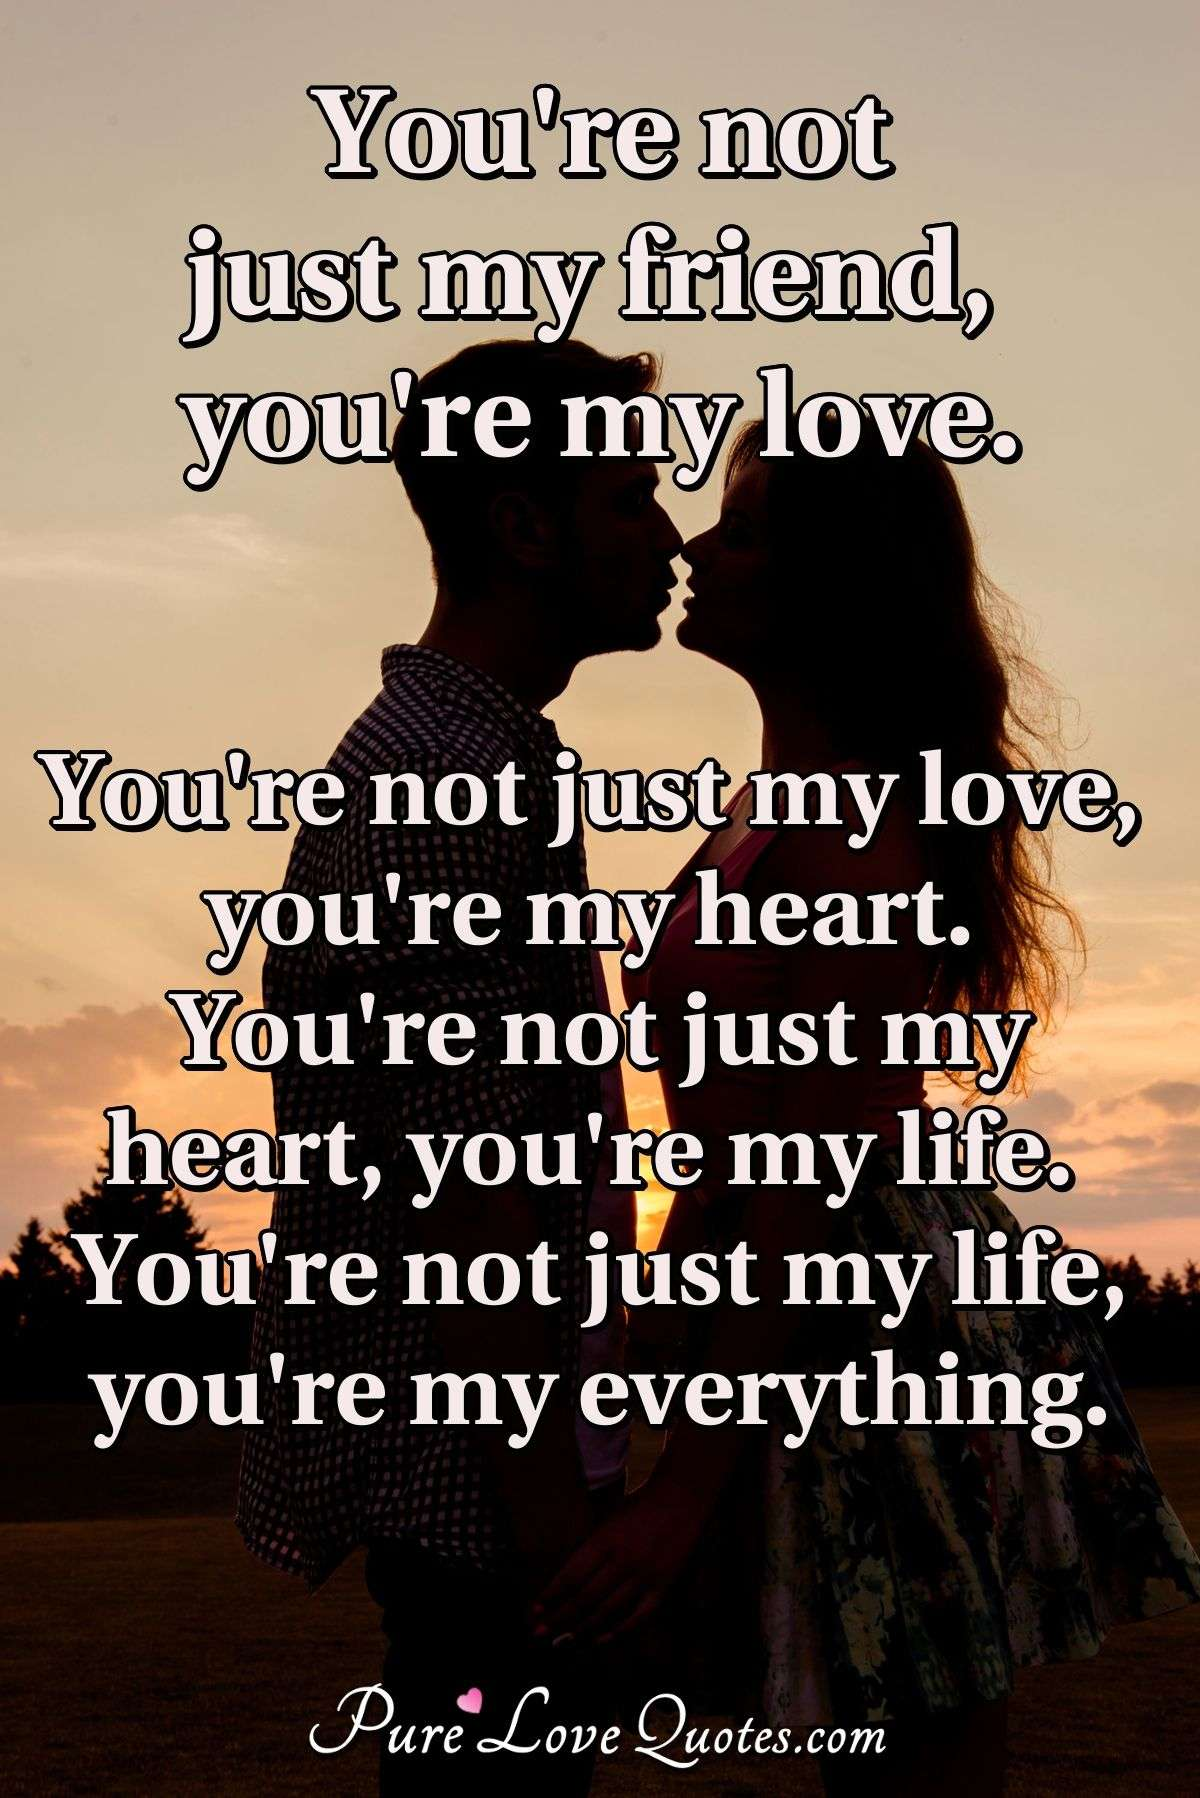 You're not just my friend, you're my love. You're not just my love, you're my heart. You're not just my heart, you're my life. You're not just my life, you're my everything. - Anonymous